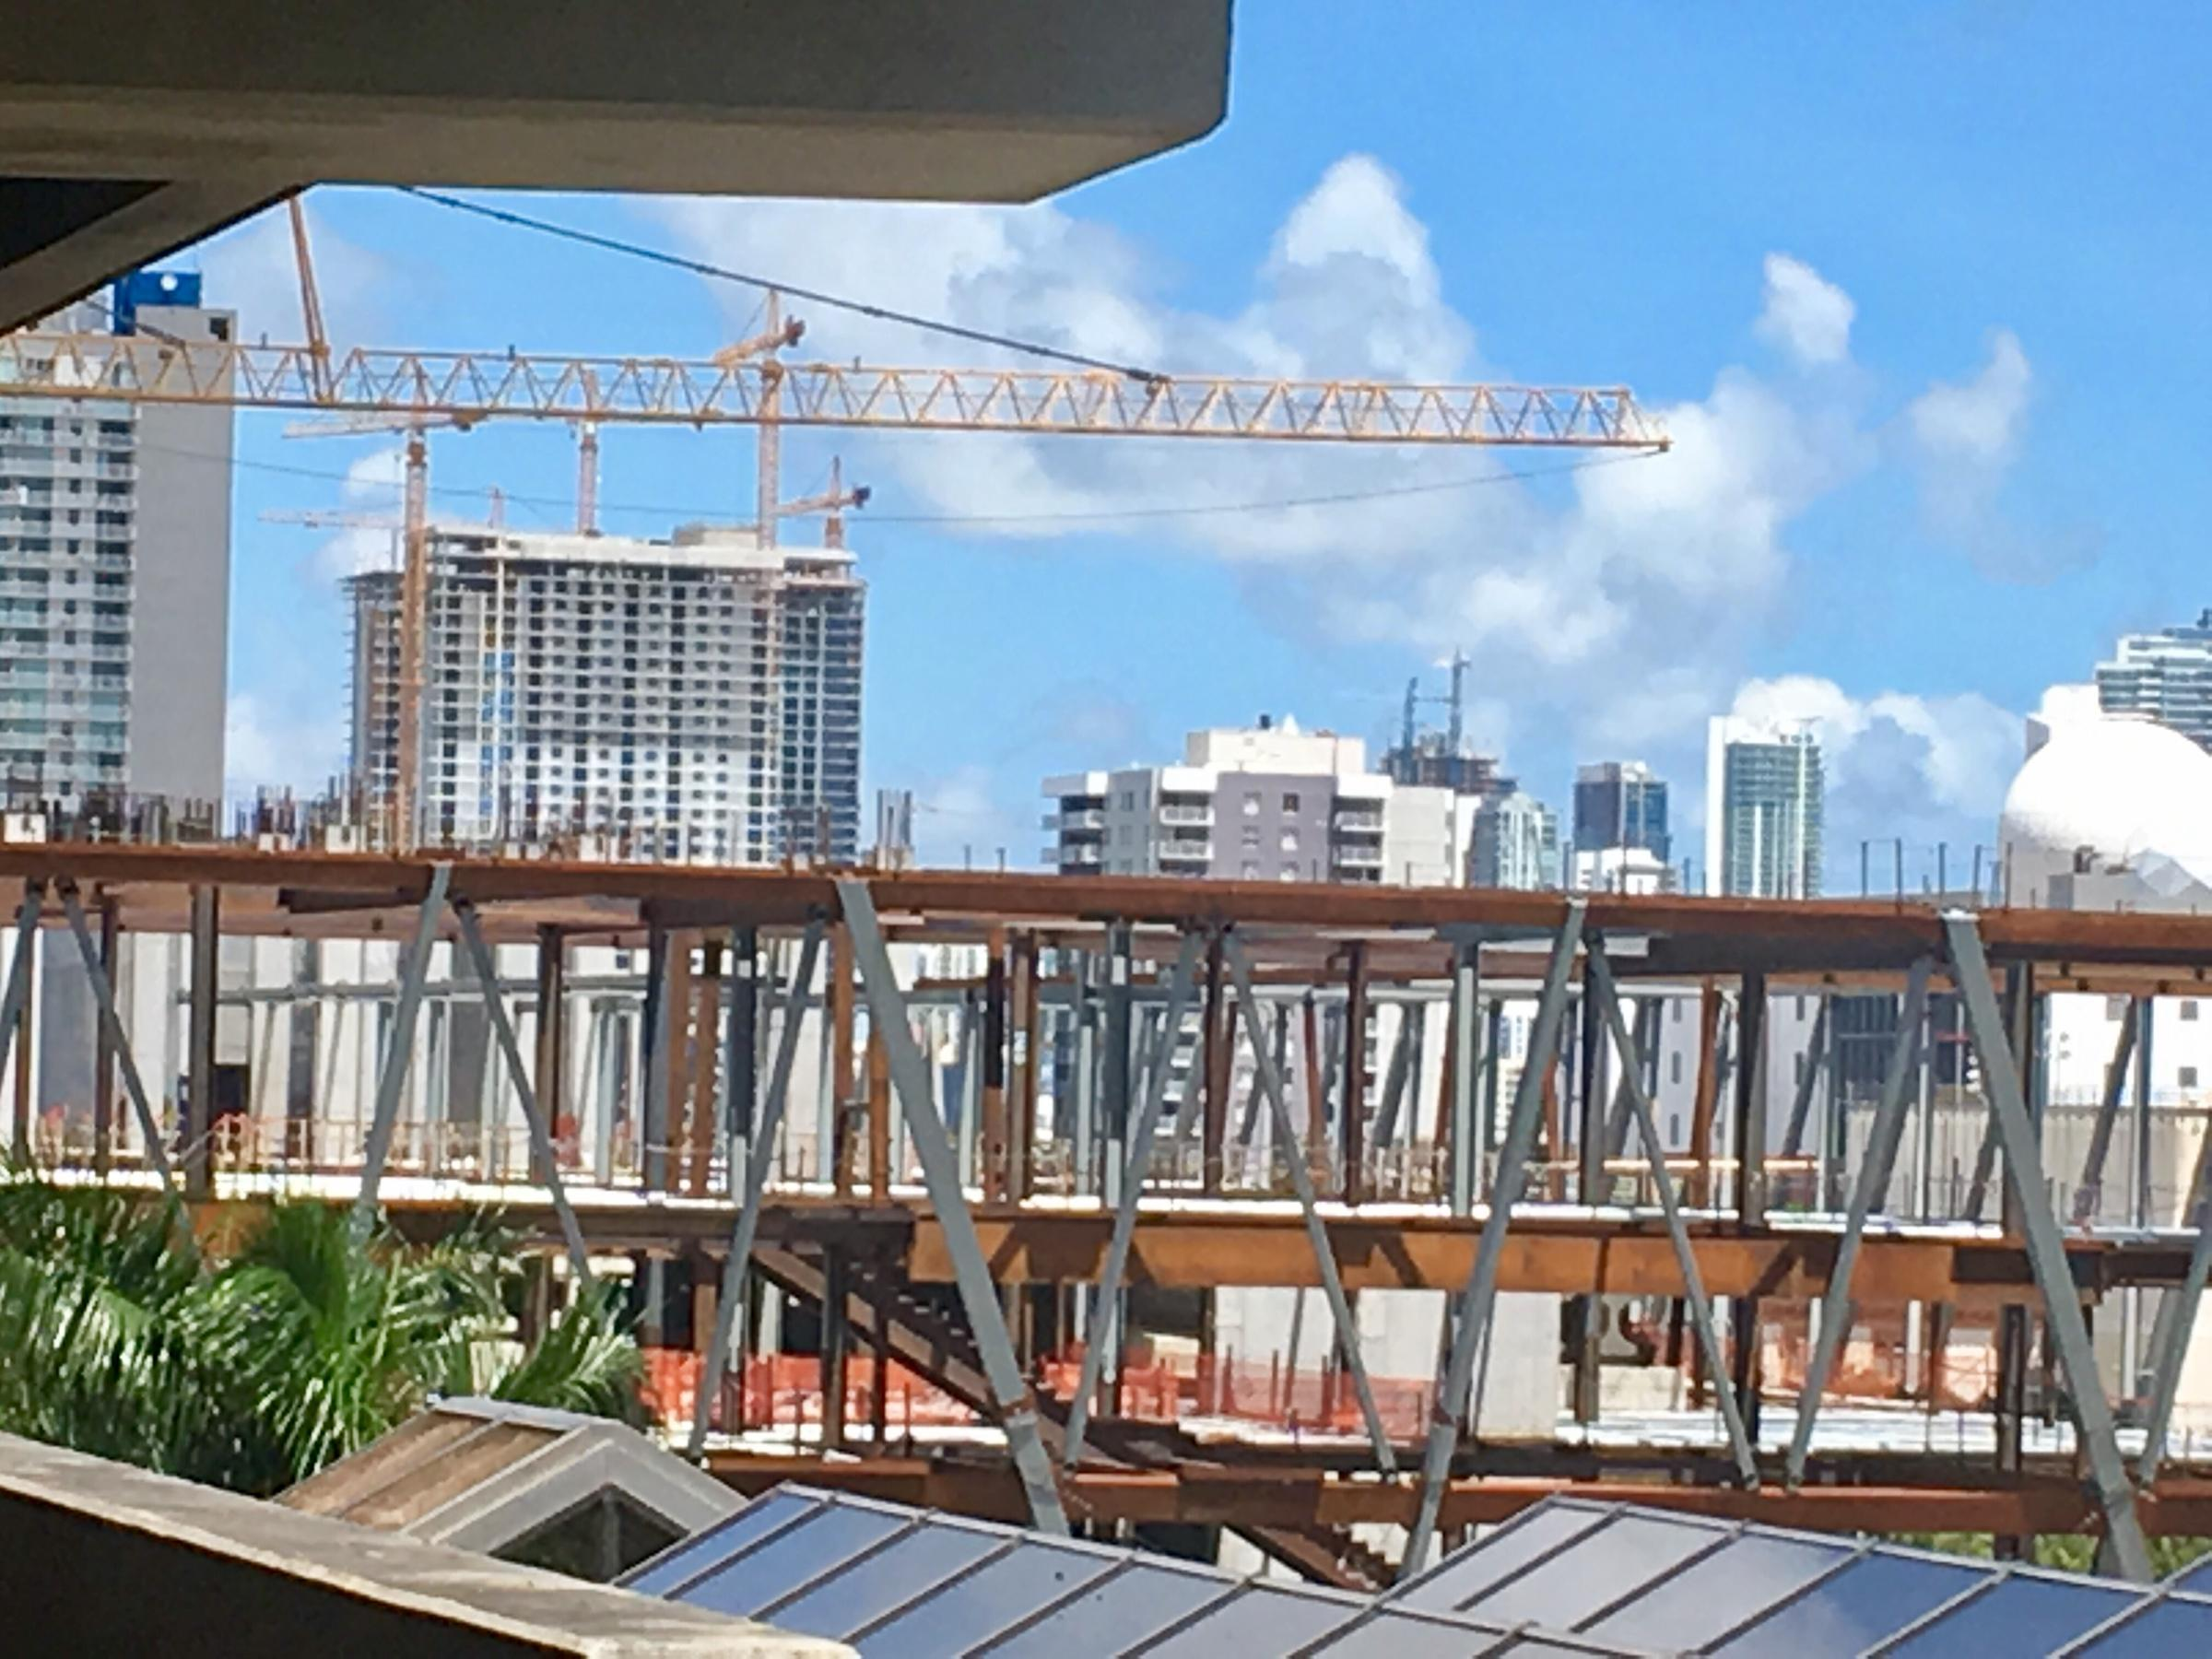 2 huge cranes atop Miami high-rises collapse in Irma's winds